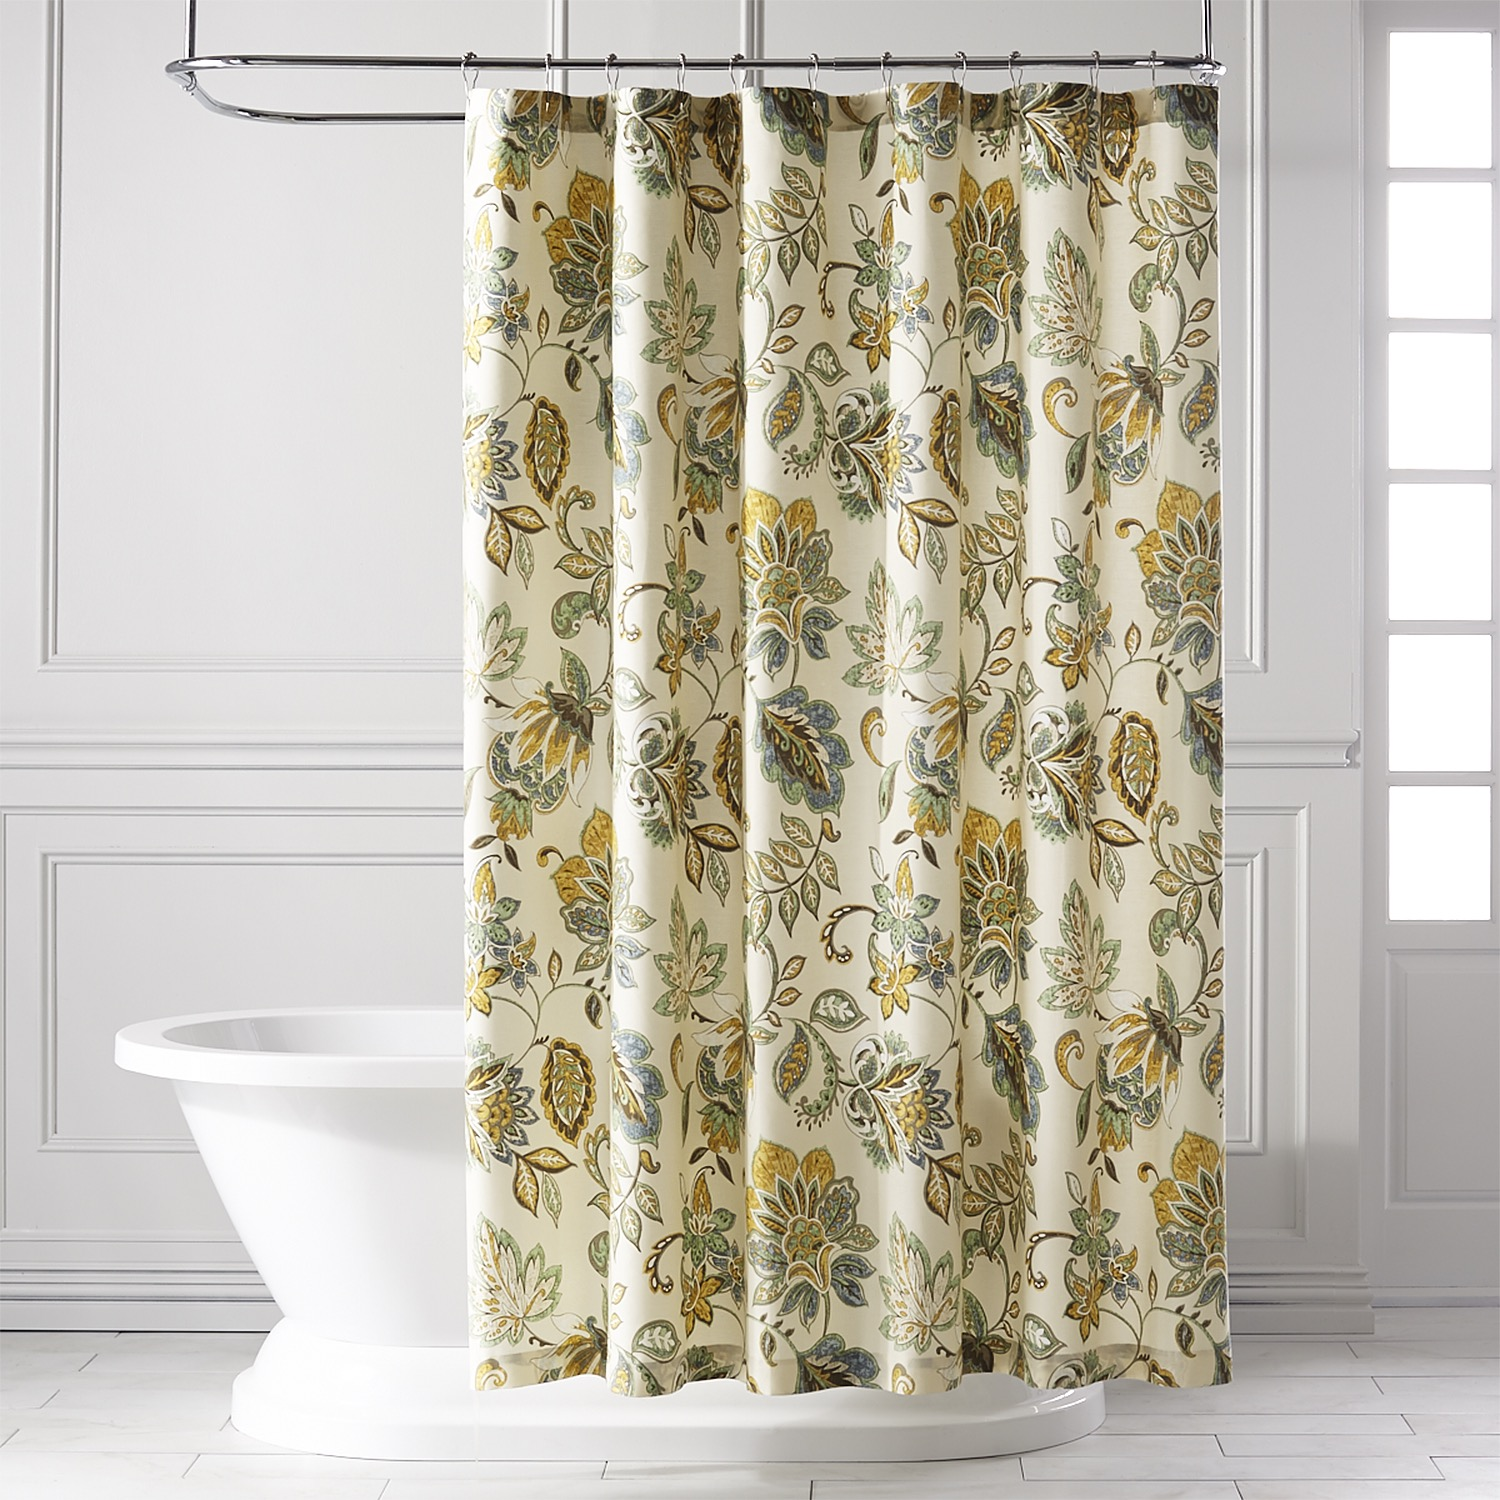 Glencove Blue Shower Curtain